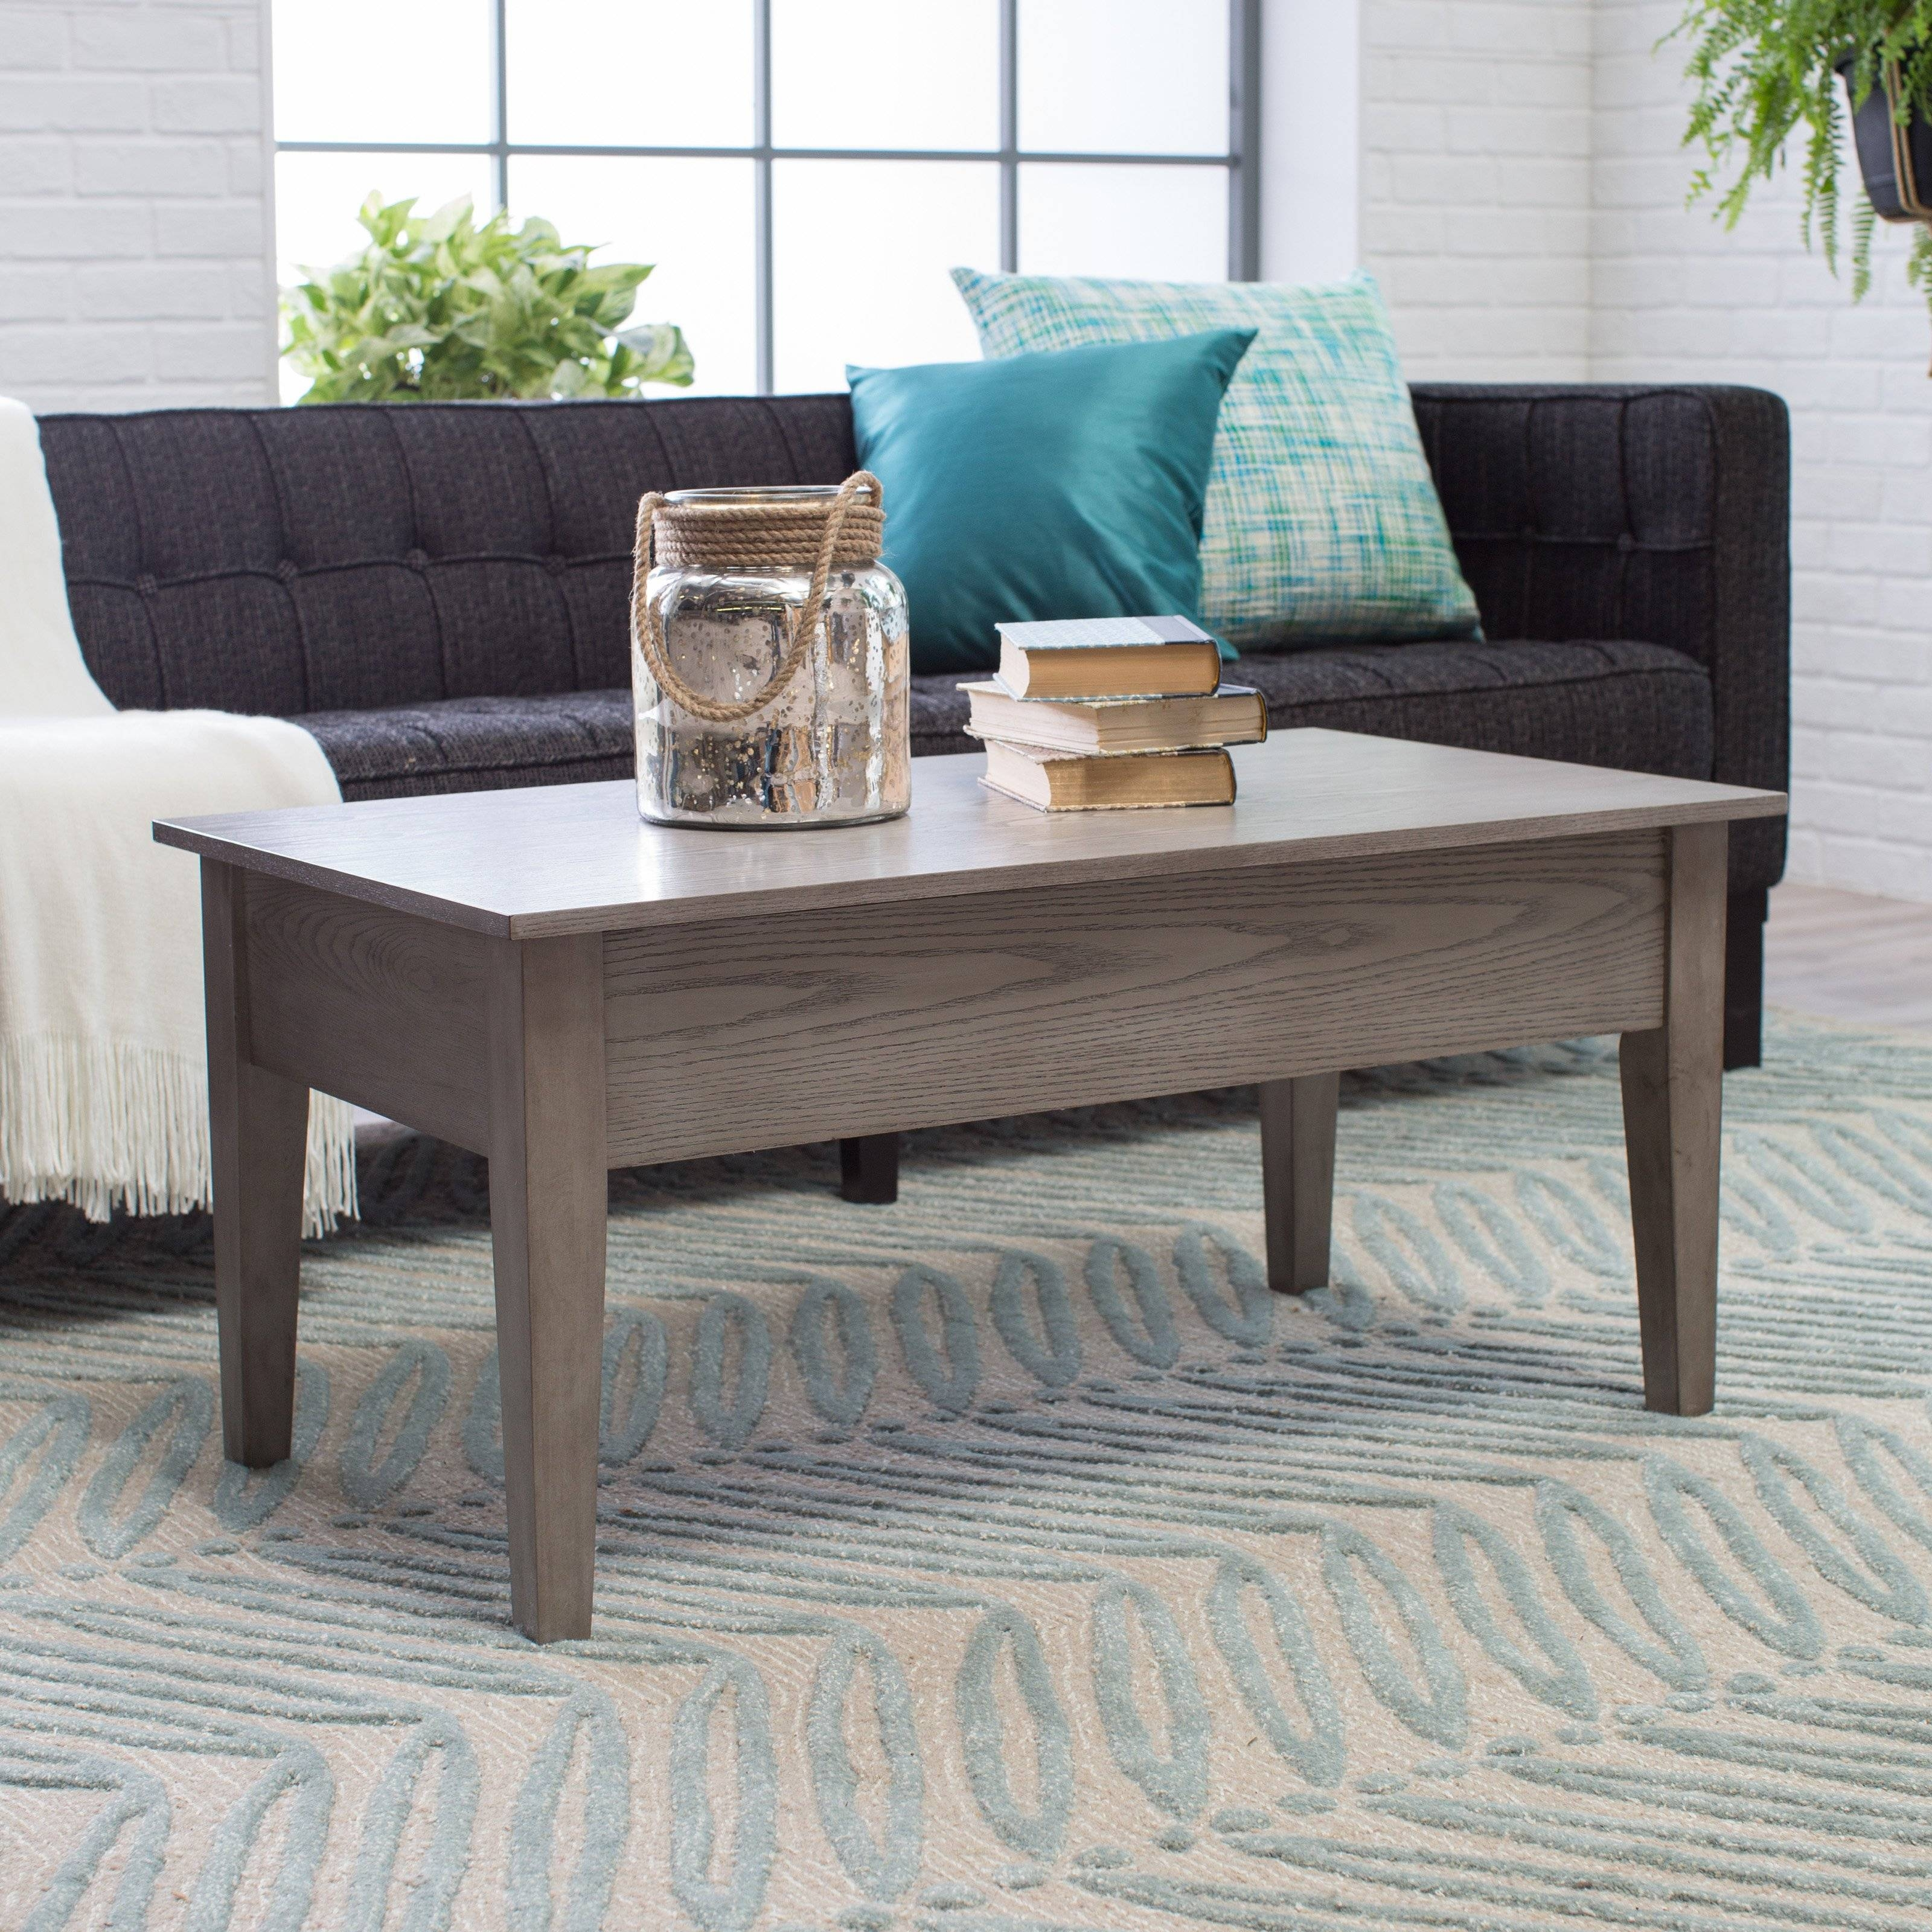 Turner Lift Top Coffee Table - Gray | Hayneedle inside Lift Coffee Tables (Image 28 of 30)